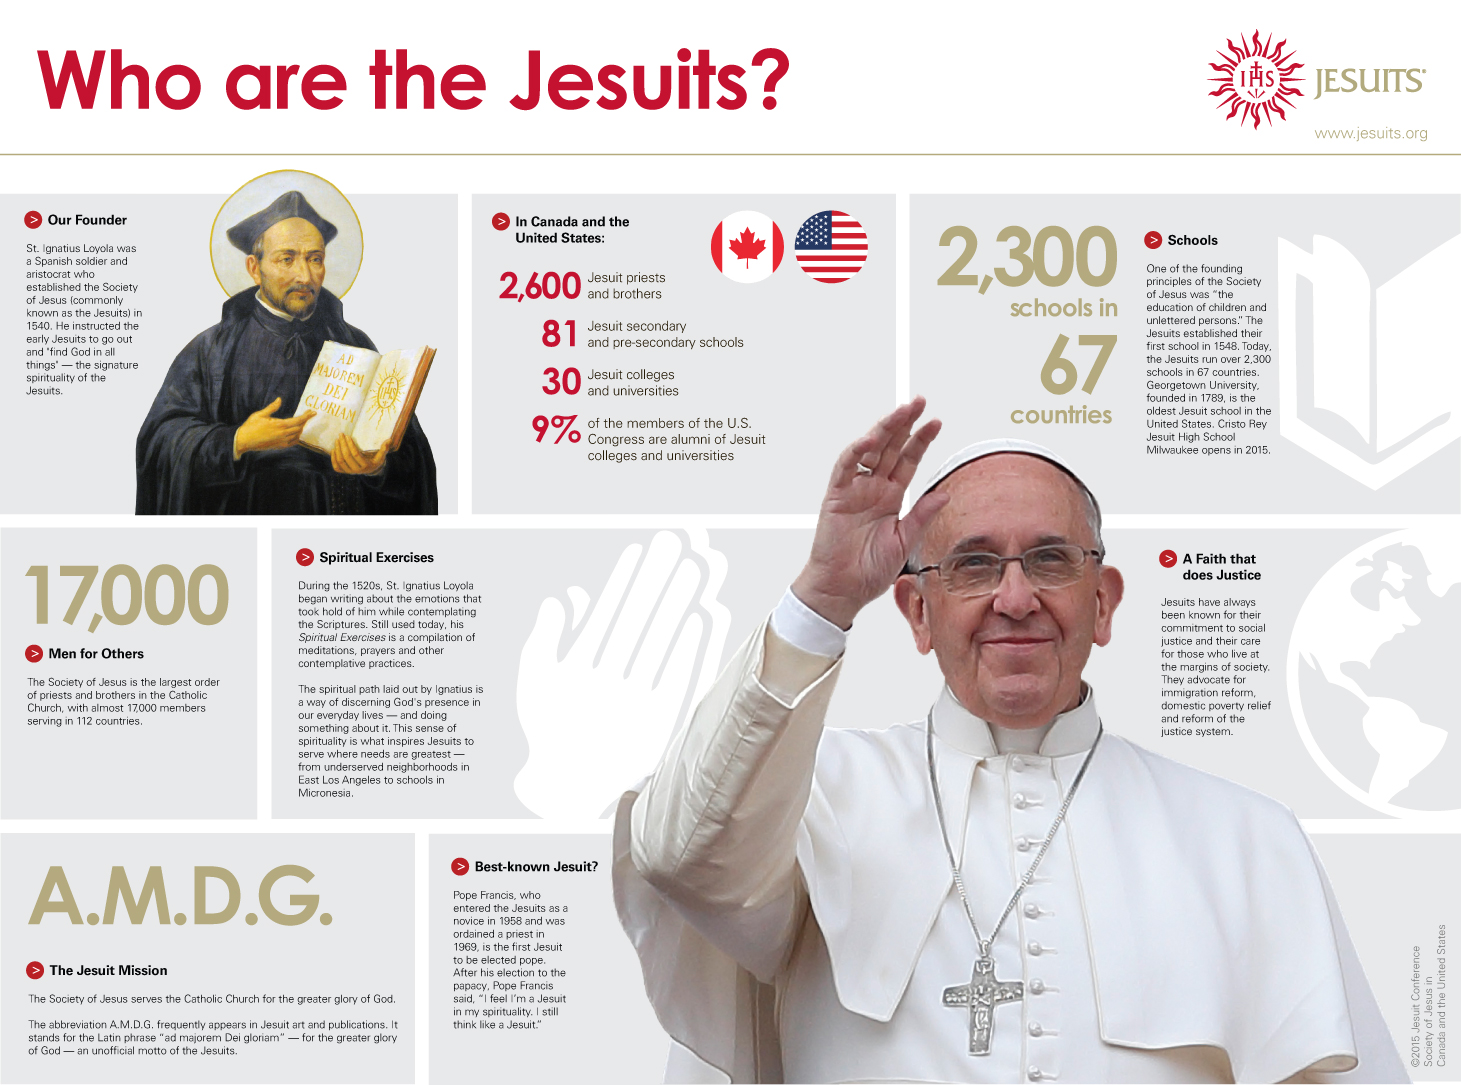 jesuits debut pope francis resource web page for historic u s  visit